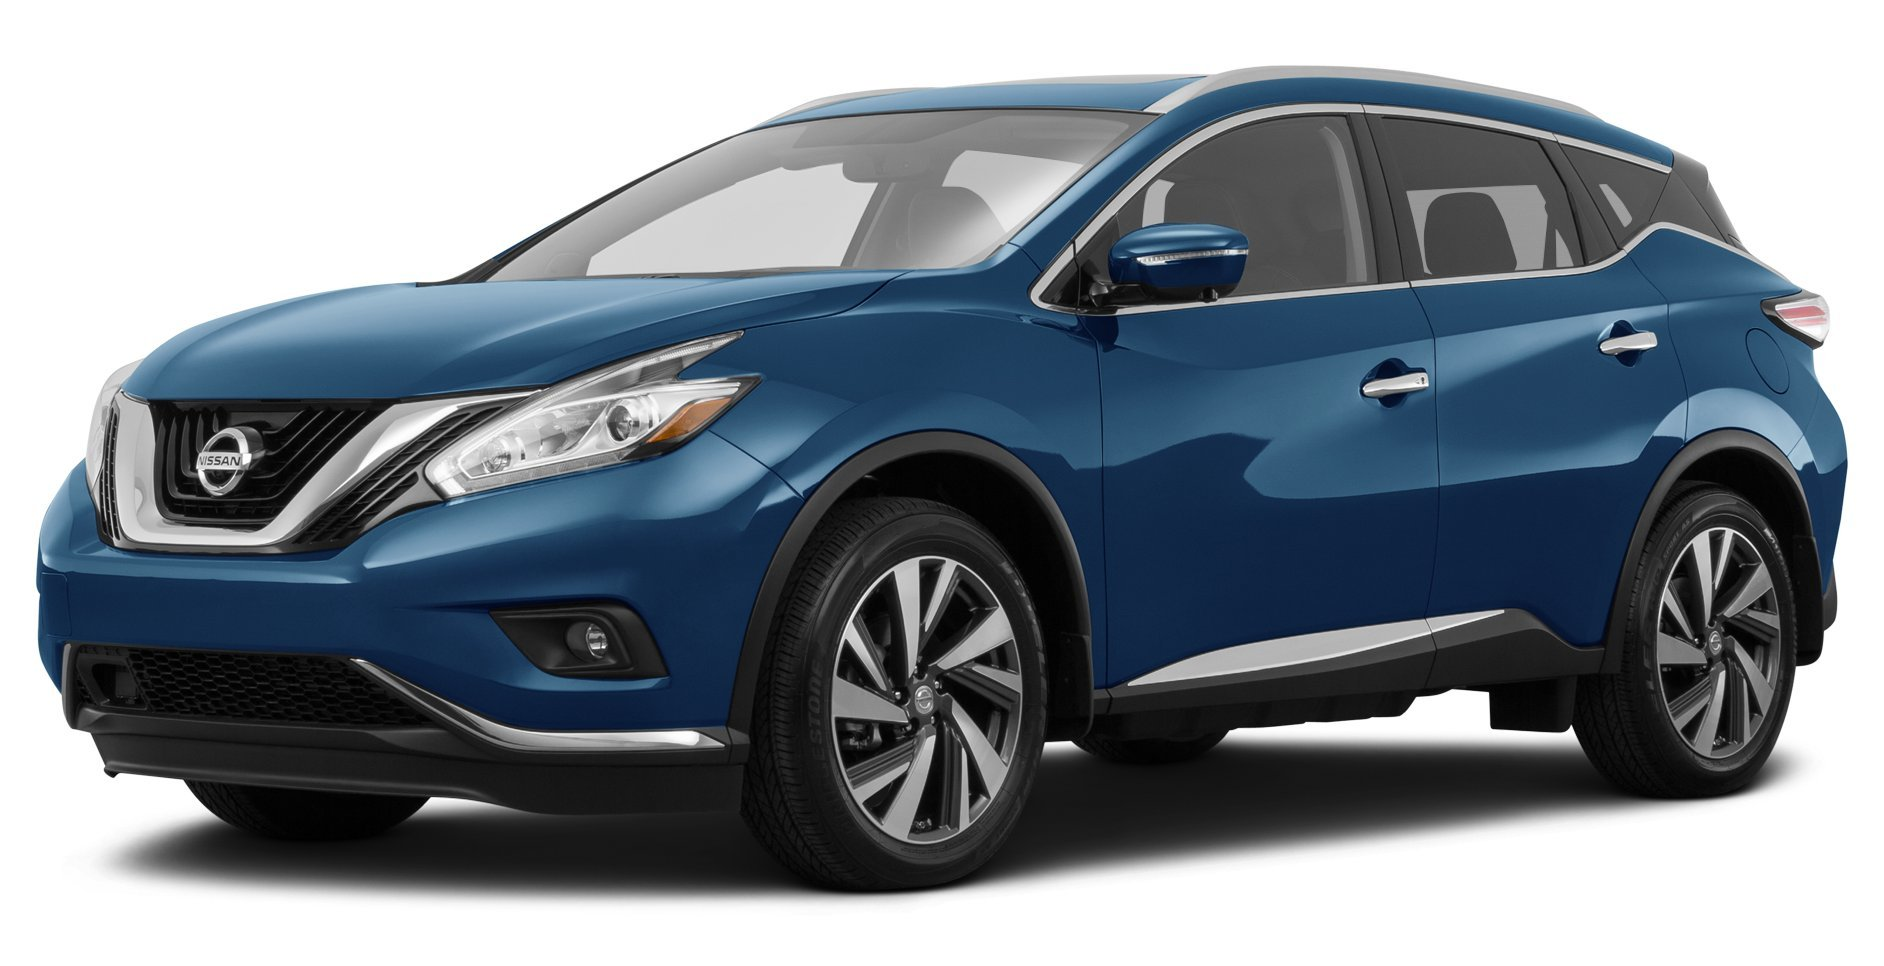 2016 nissan murano reviews images and specs vehicles. Black Bedroom Furniture Sets. Home Design Ideas